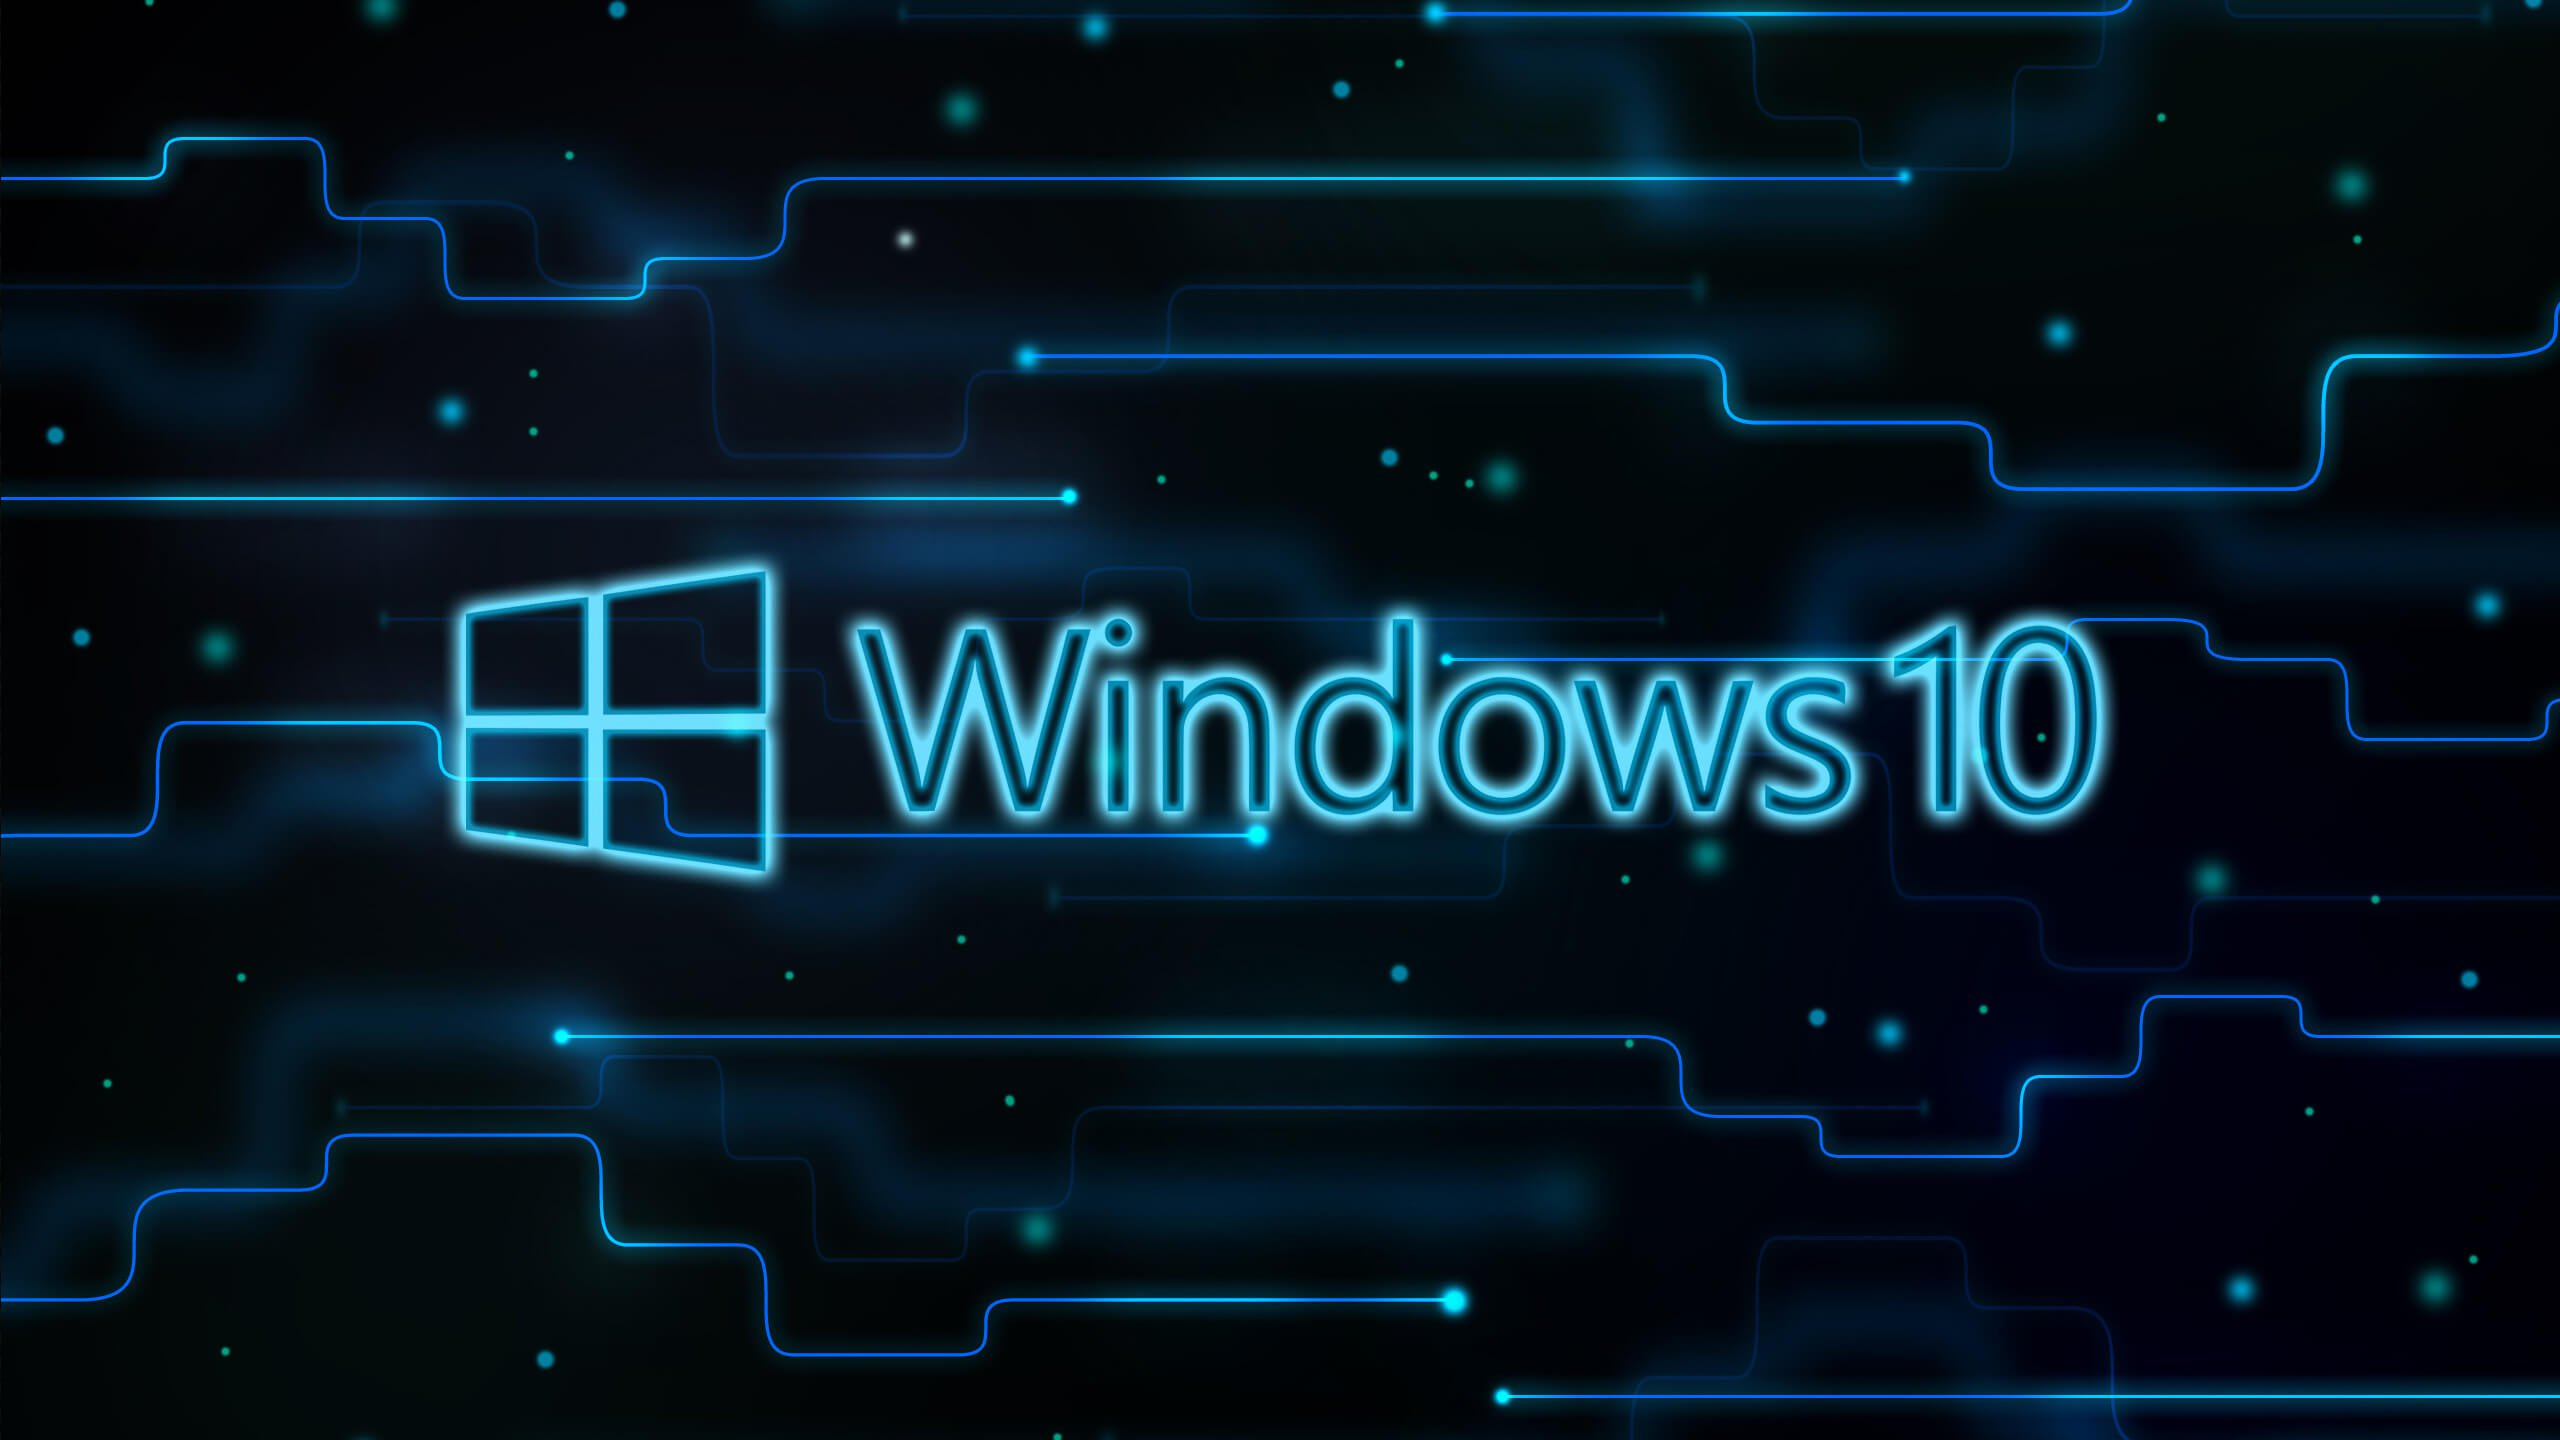 Windows 10 es el líder. ¡Por fin!